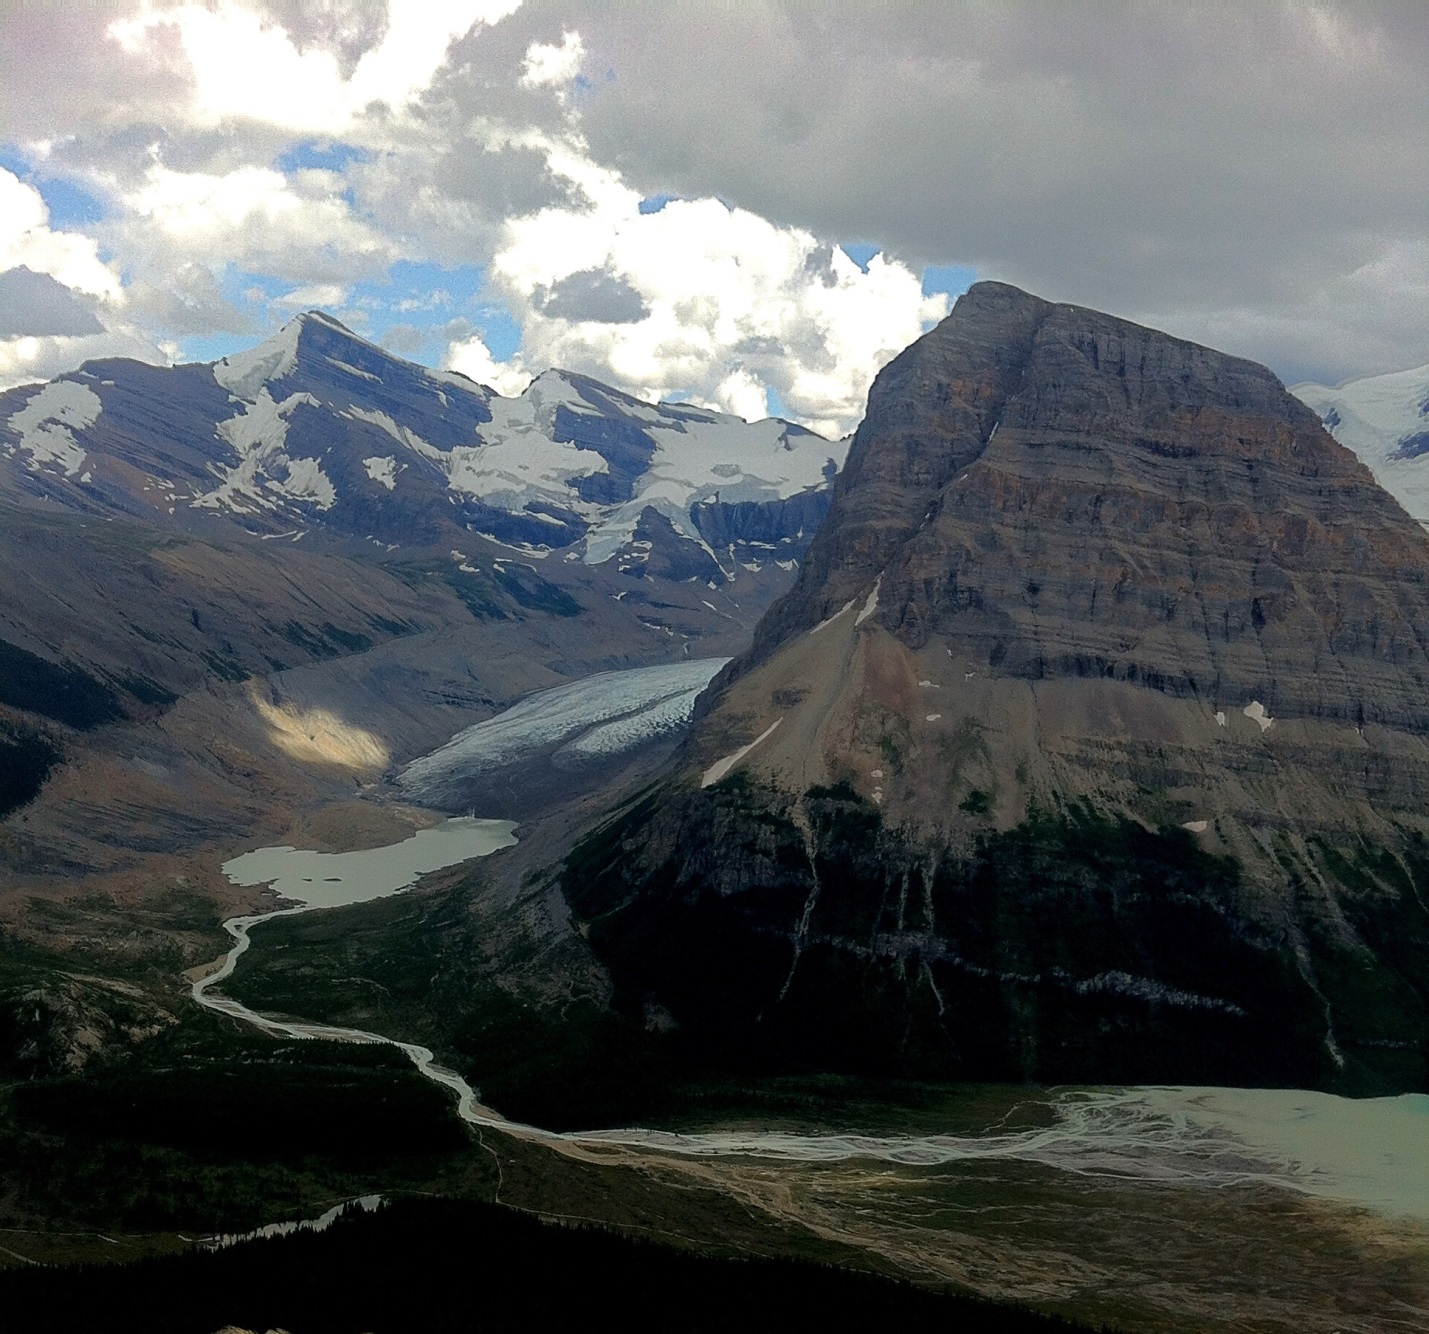 Photograph of Rearguard Mt. and Robson Glacier in the Rocky Mountains of British Columbia [SE]